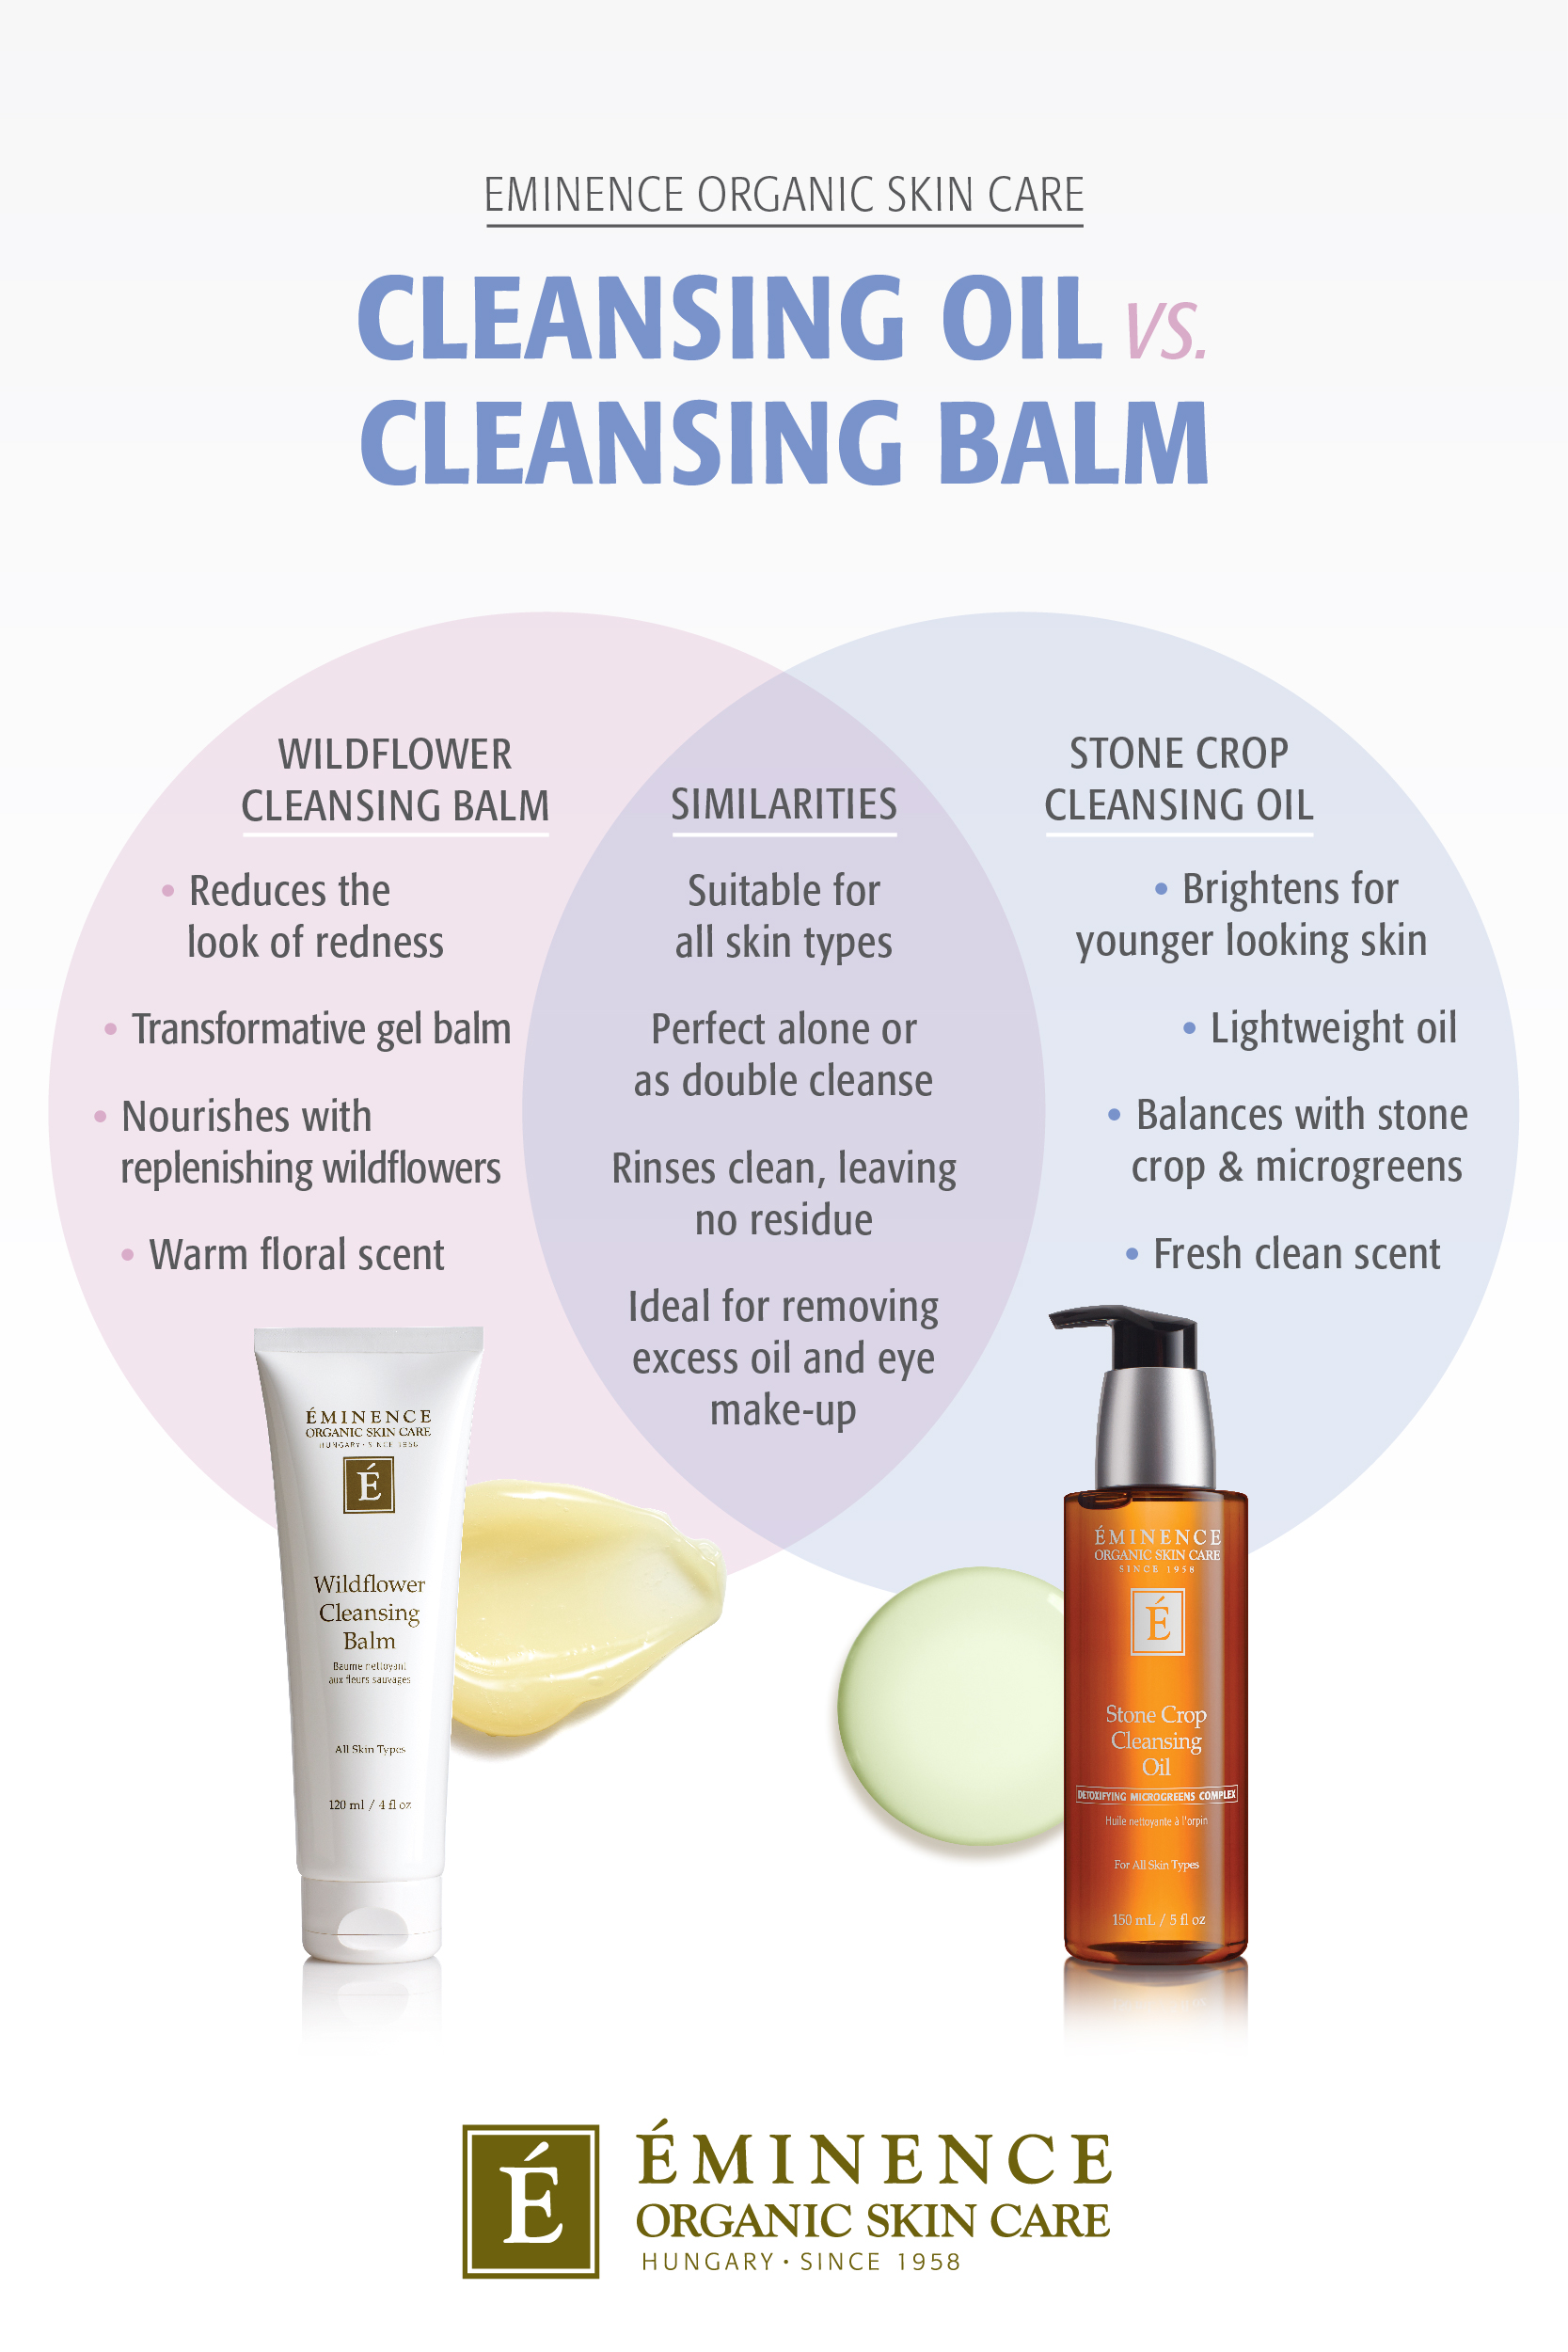 cleansing_balm_vs_cleansing_oil_a2.jpg